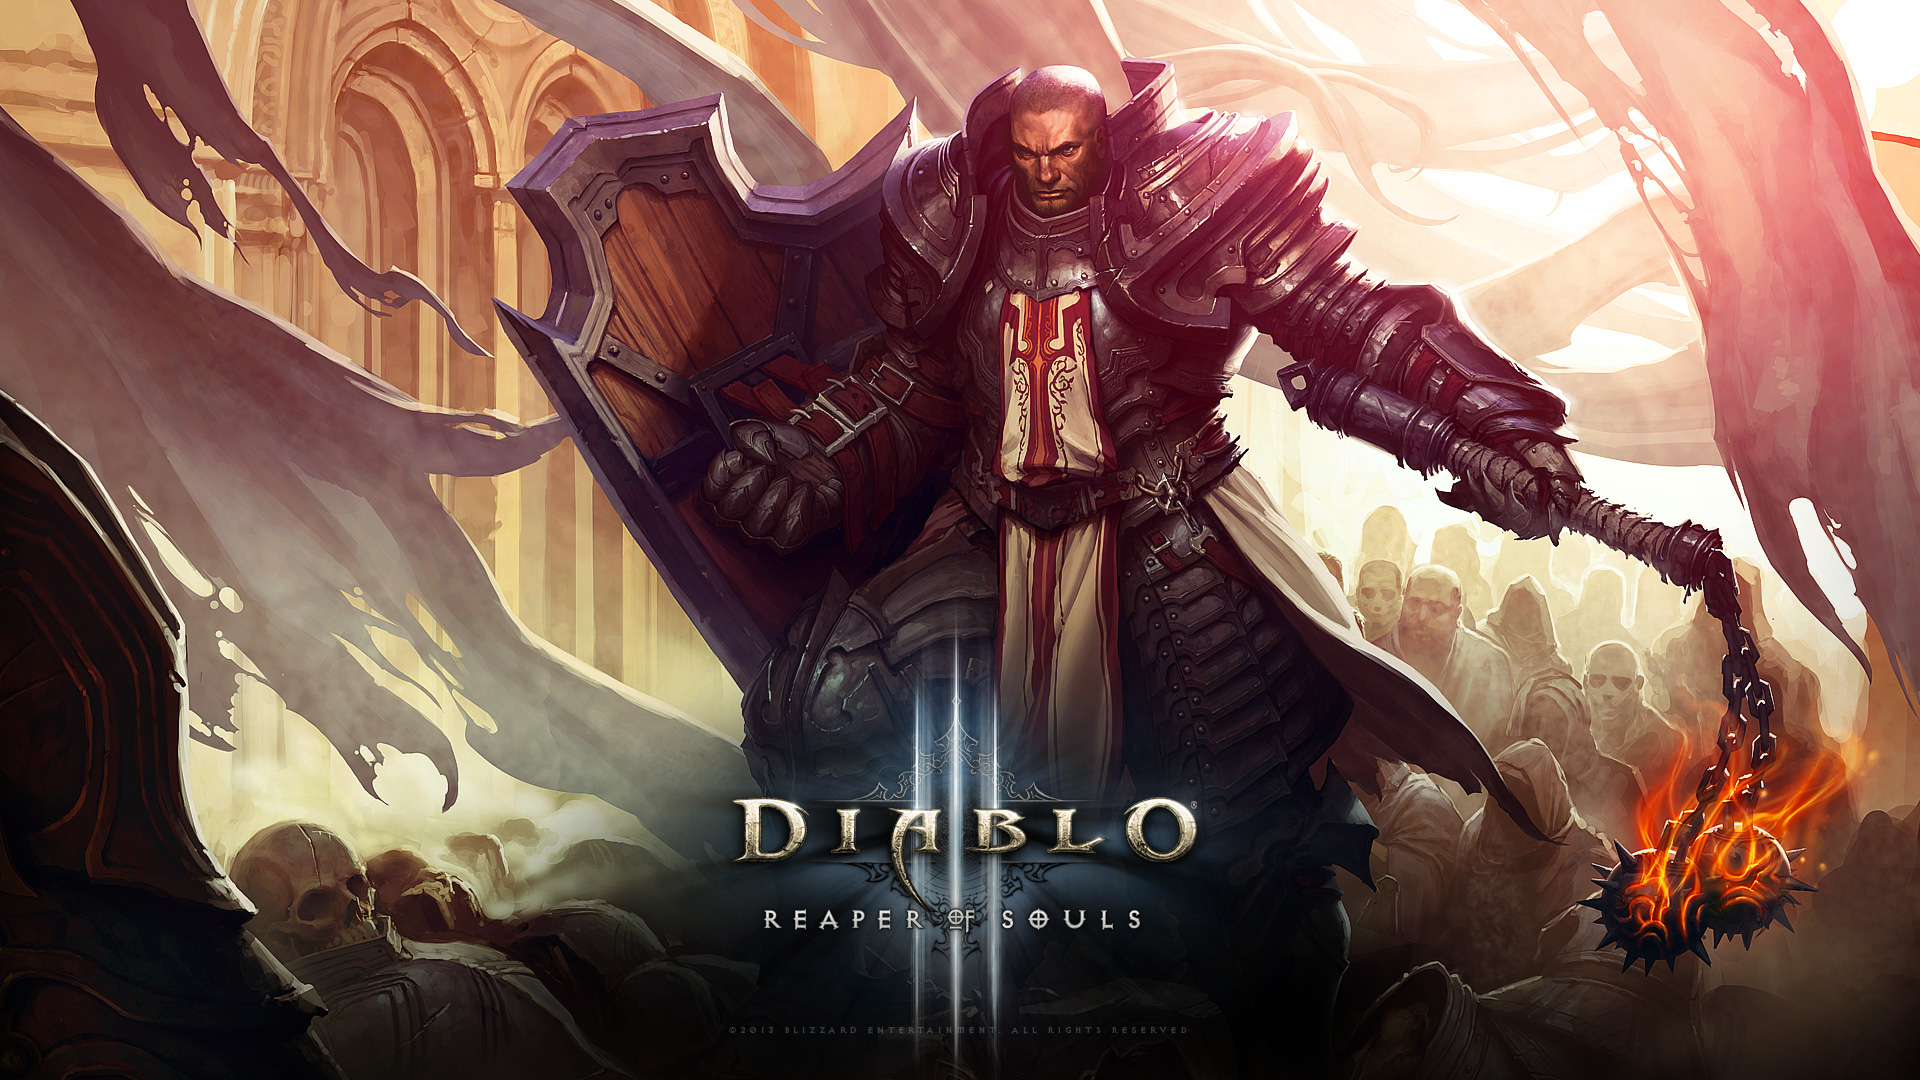 Reaper of Souls adds a number of new features to the core gameplay of Diablo III. These include: